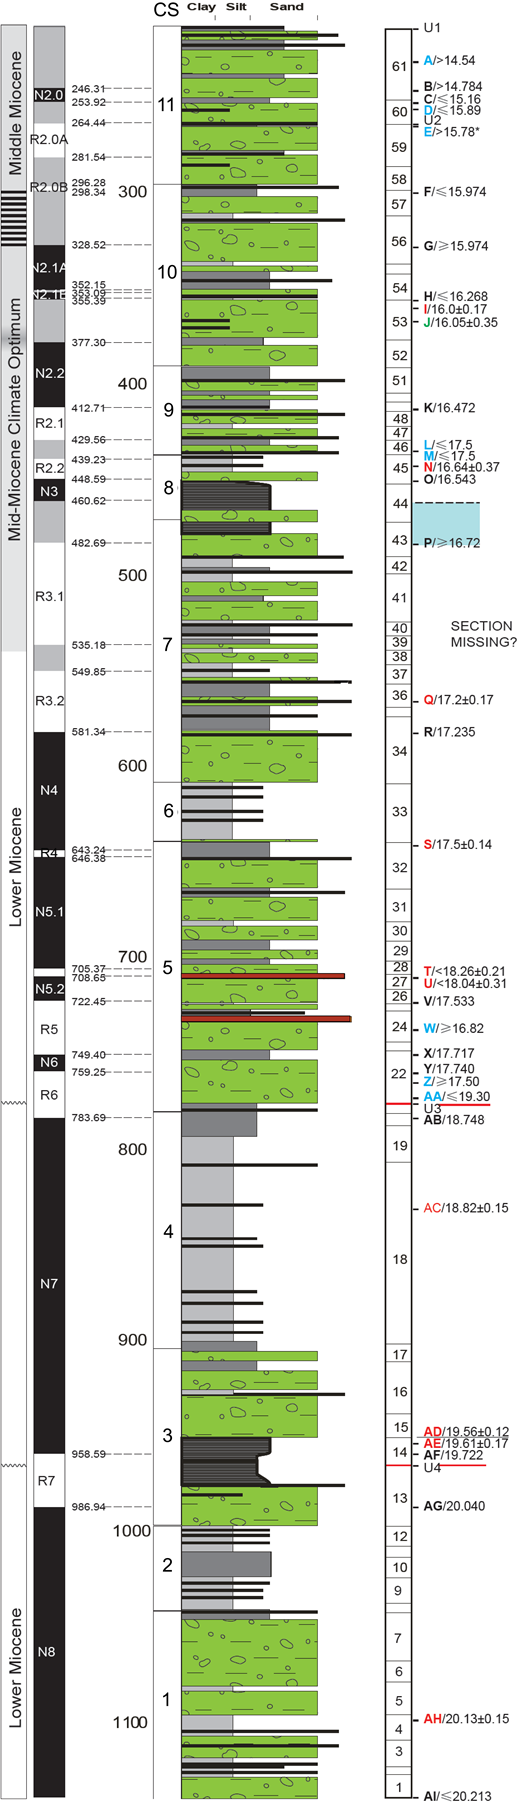 Age data and paleomagnetic reversals for the early and middle Miocene section in AND-2A based on SMS Science Team (2010), and the five composite sequences (CS, 1–5) described in this paper. See Levy et al. (2016; their supplementary material table 5.1, their figures S2 and S5) for details of chronostratigraphic data.